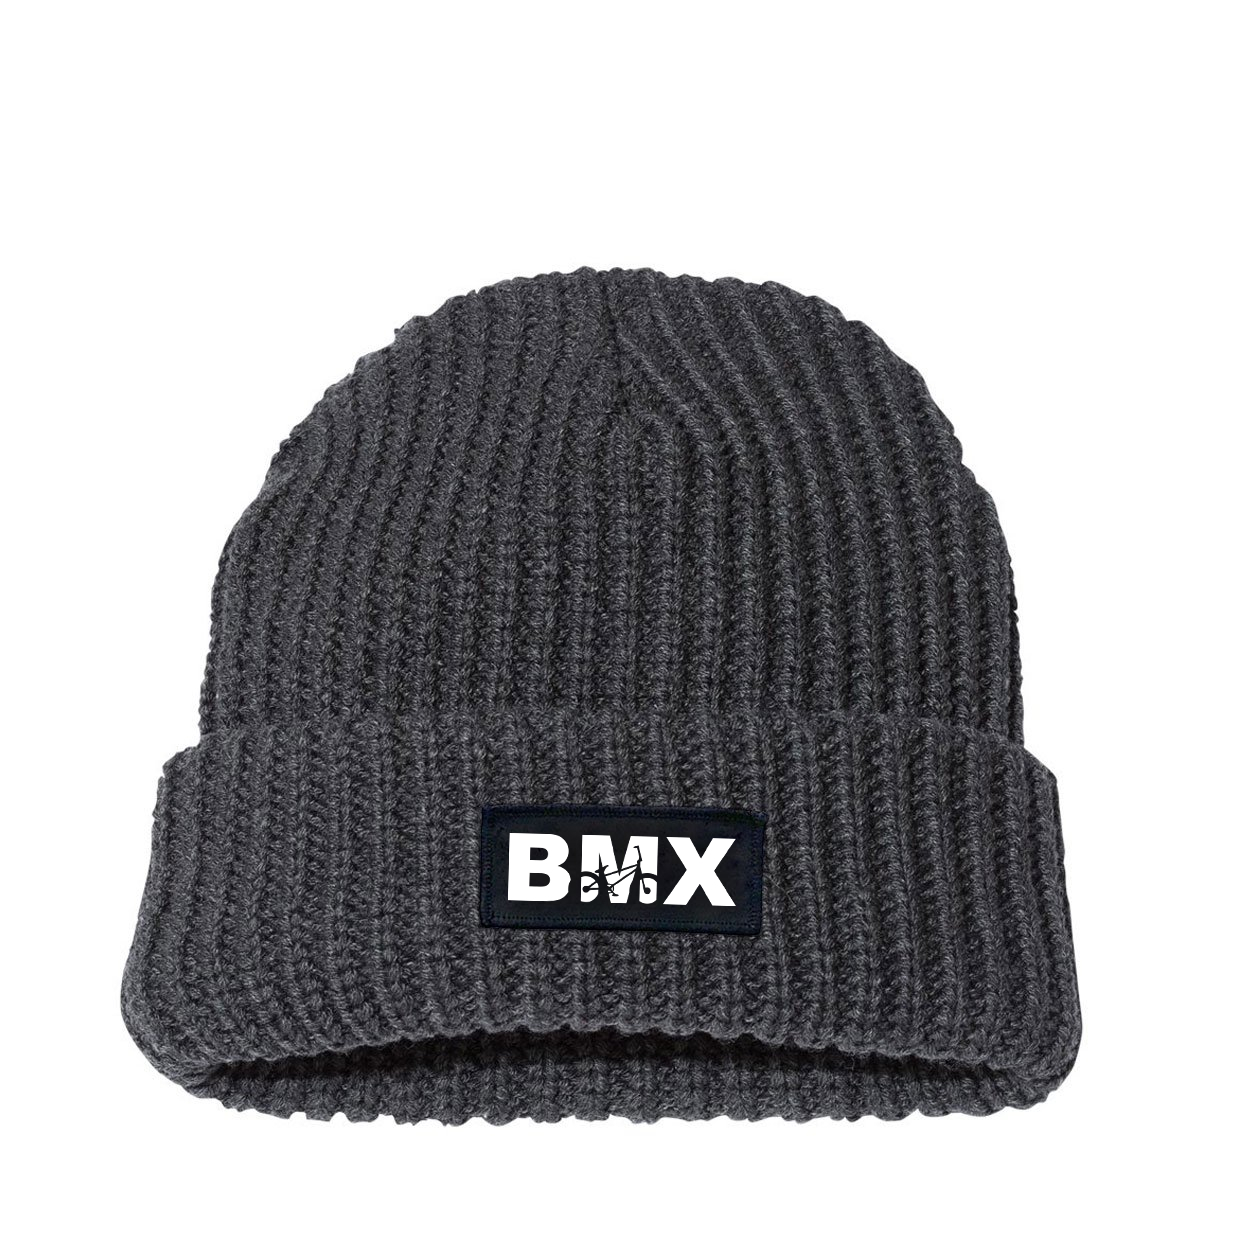 BMX Bike Logo Night Out Woven Patch Roll Up Jumbo Chunky Knit Beanie Charcoal (White Logo)